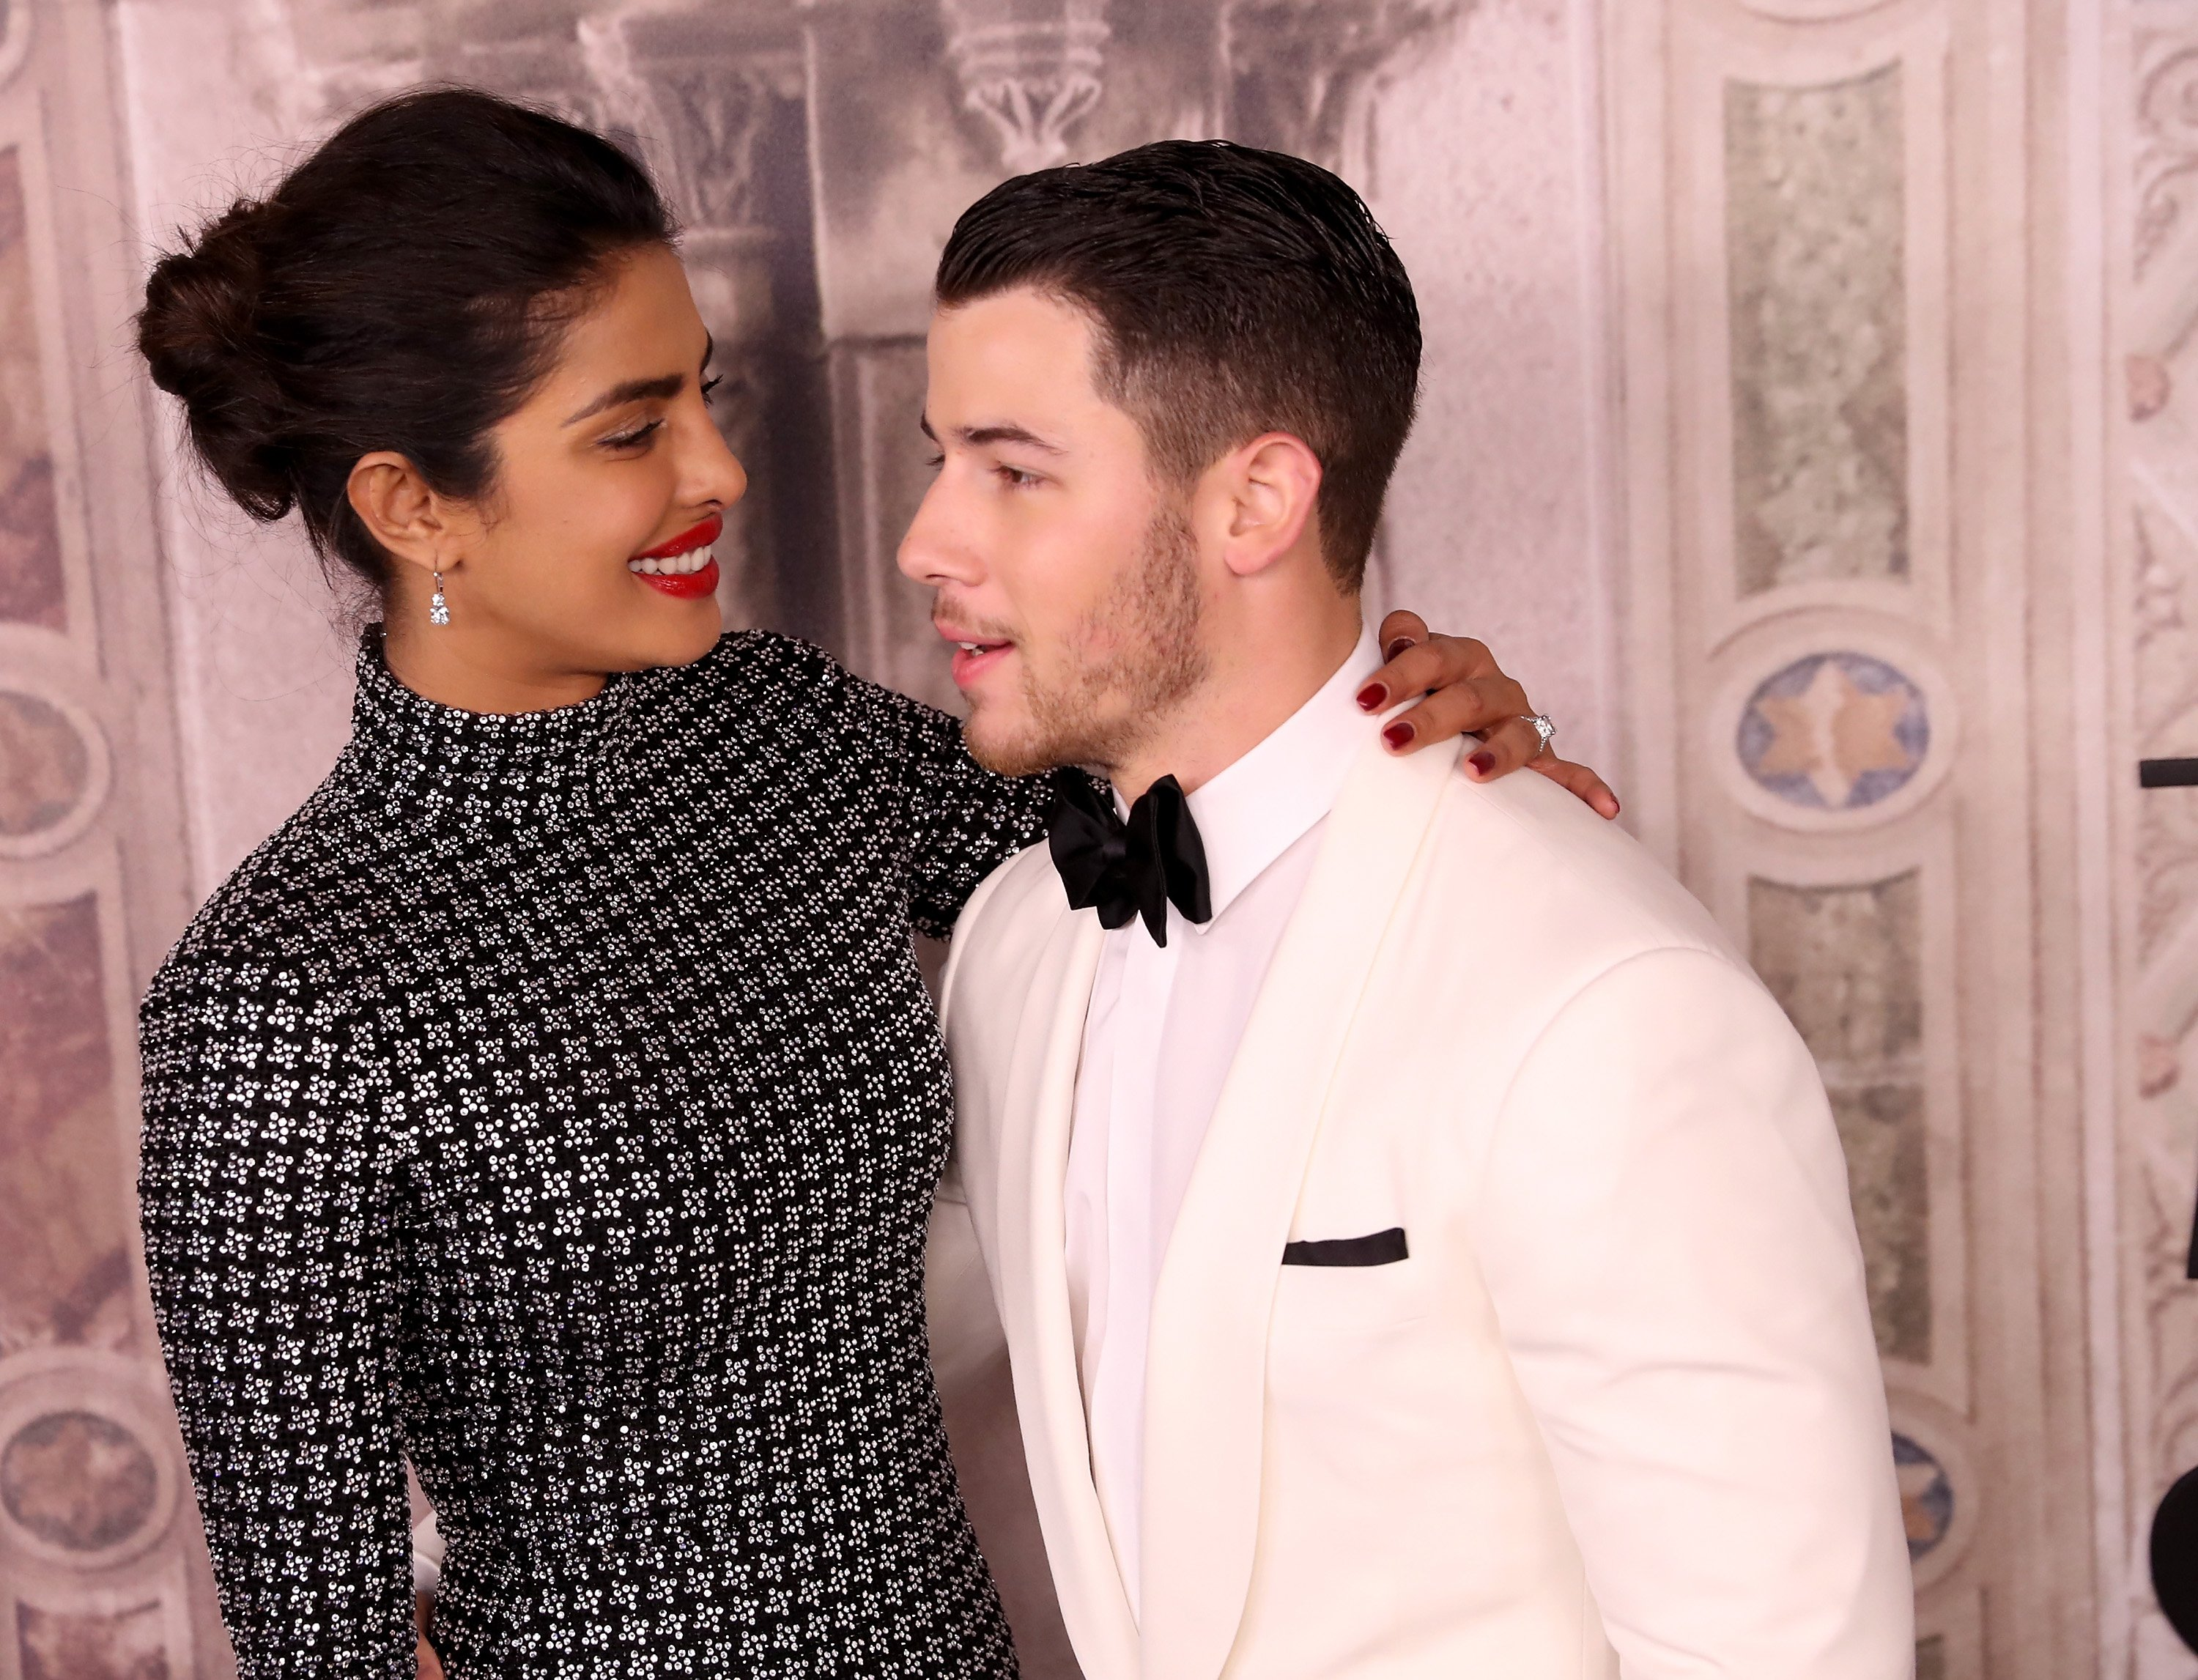 Priyanka Chopra and Nick Jonas attend the Ralph Lauren fashion show during New York Fashion Week at Bethesda Terrace on September 7, 2018 in New York City | Photo: Getty Images